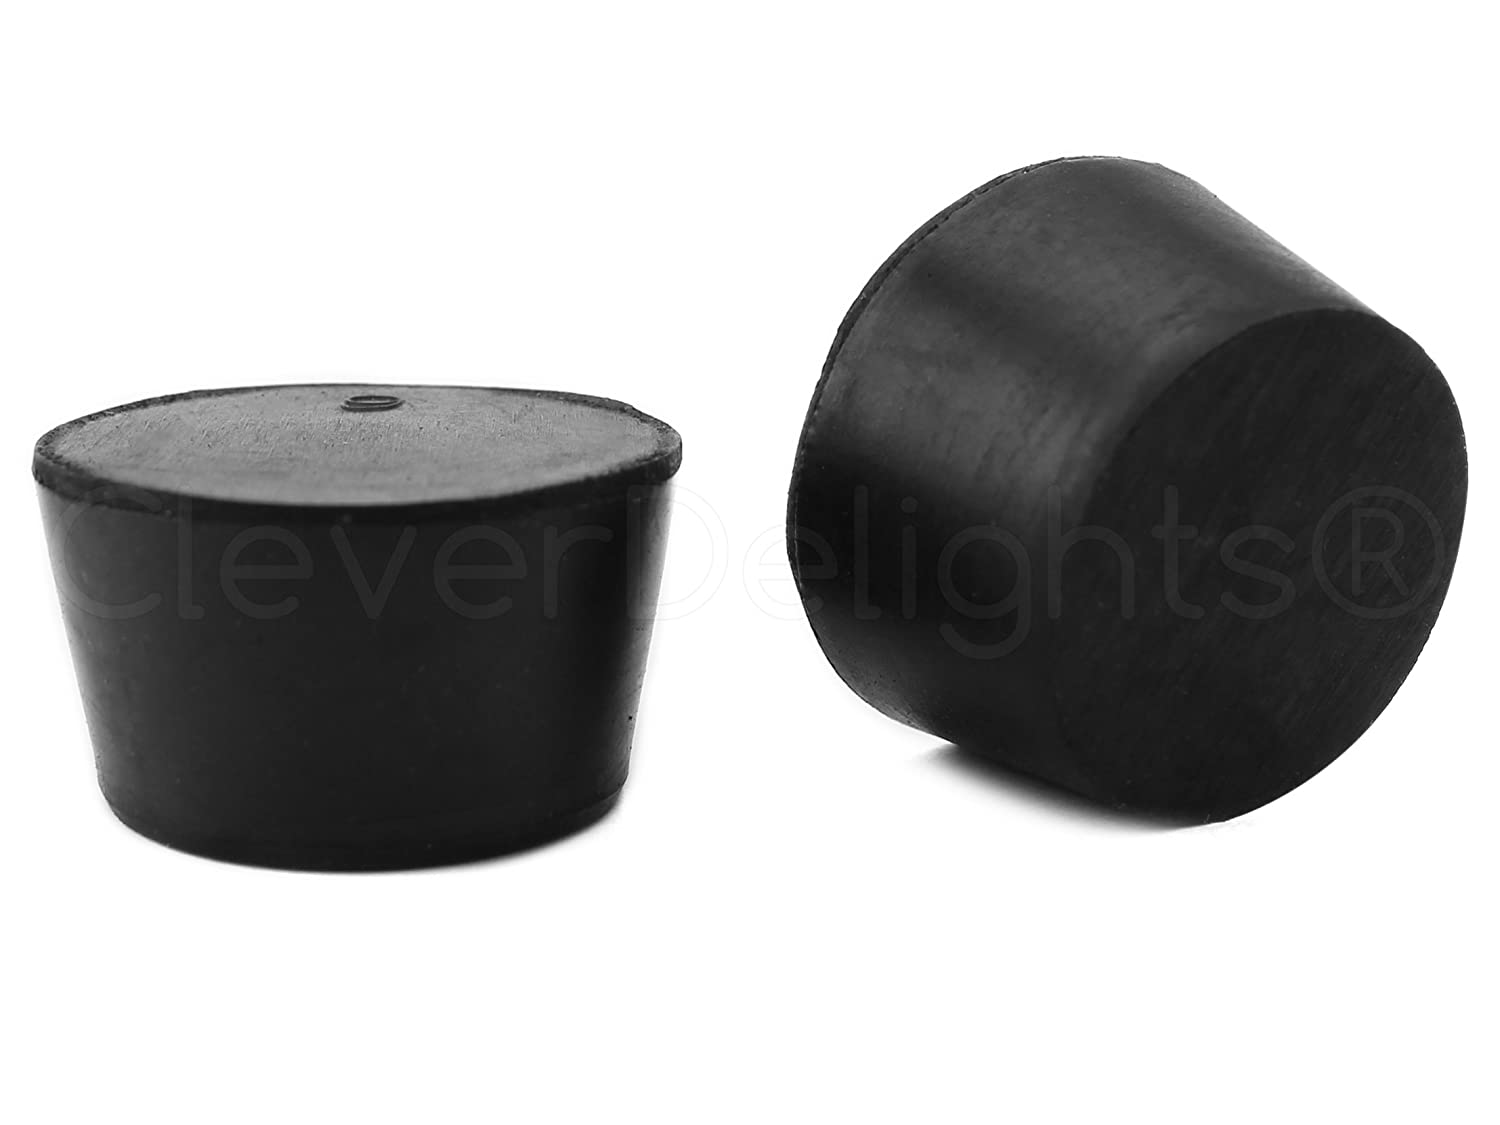 32mm Long White Lab Plug #10 1 Pack CleverDelights Solid Rubber Stoppers Size 10-53mm x 44mm